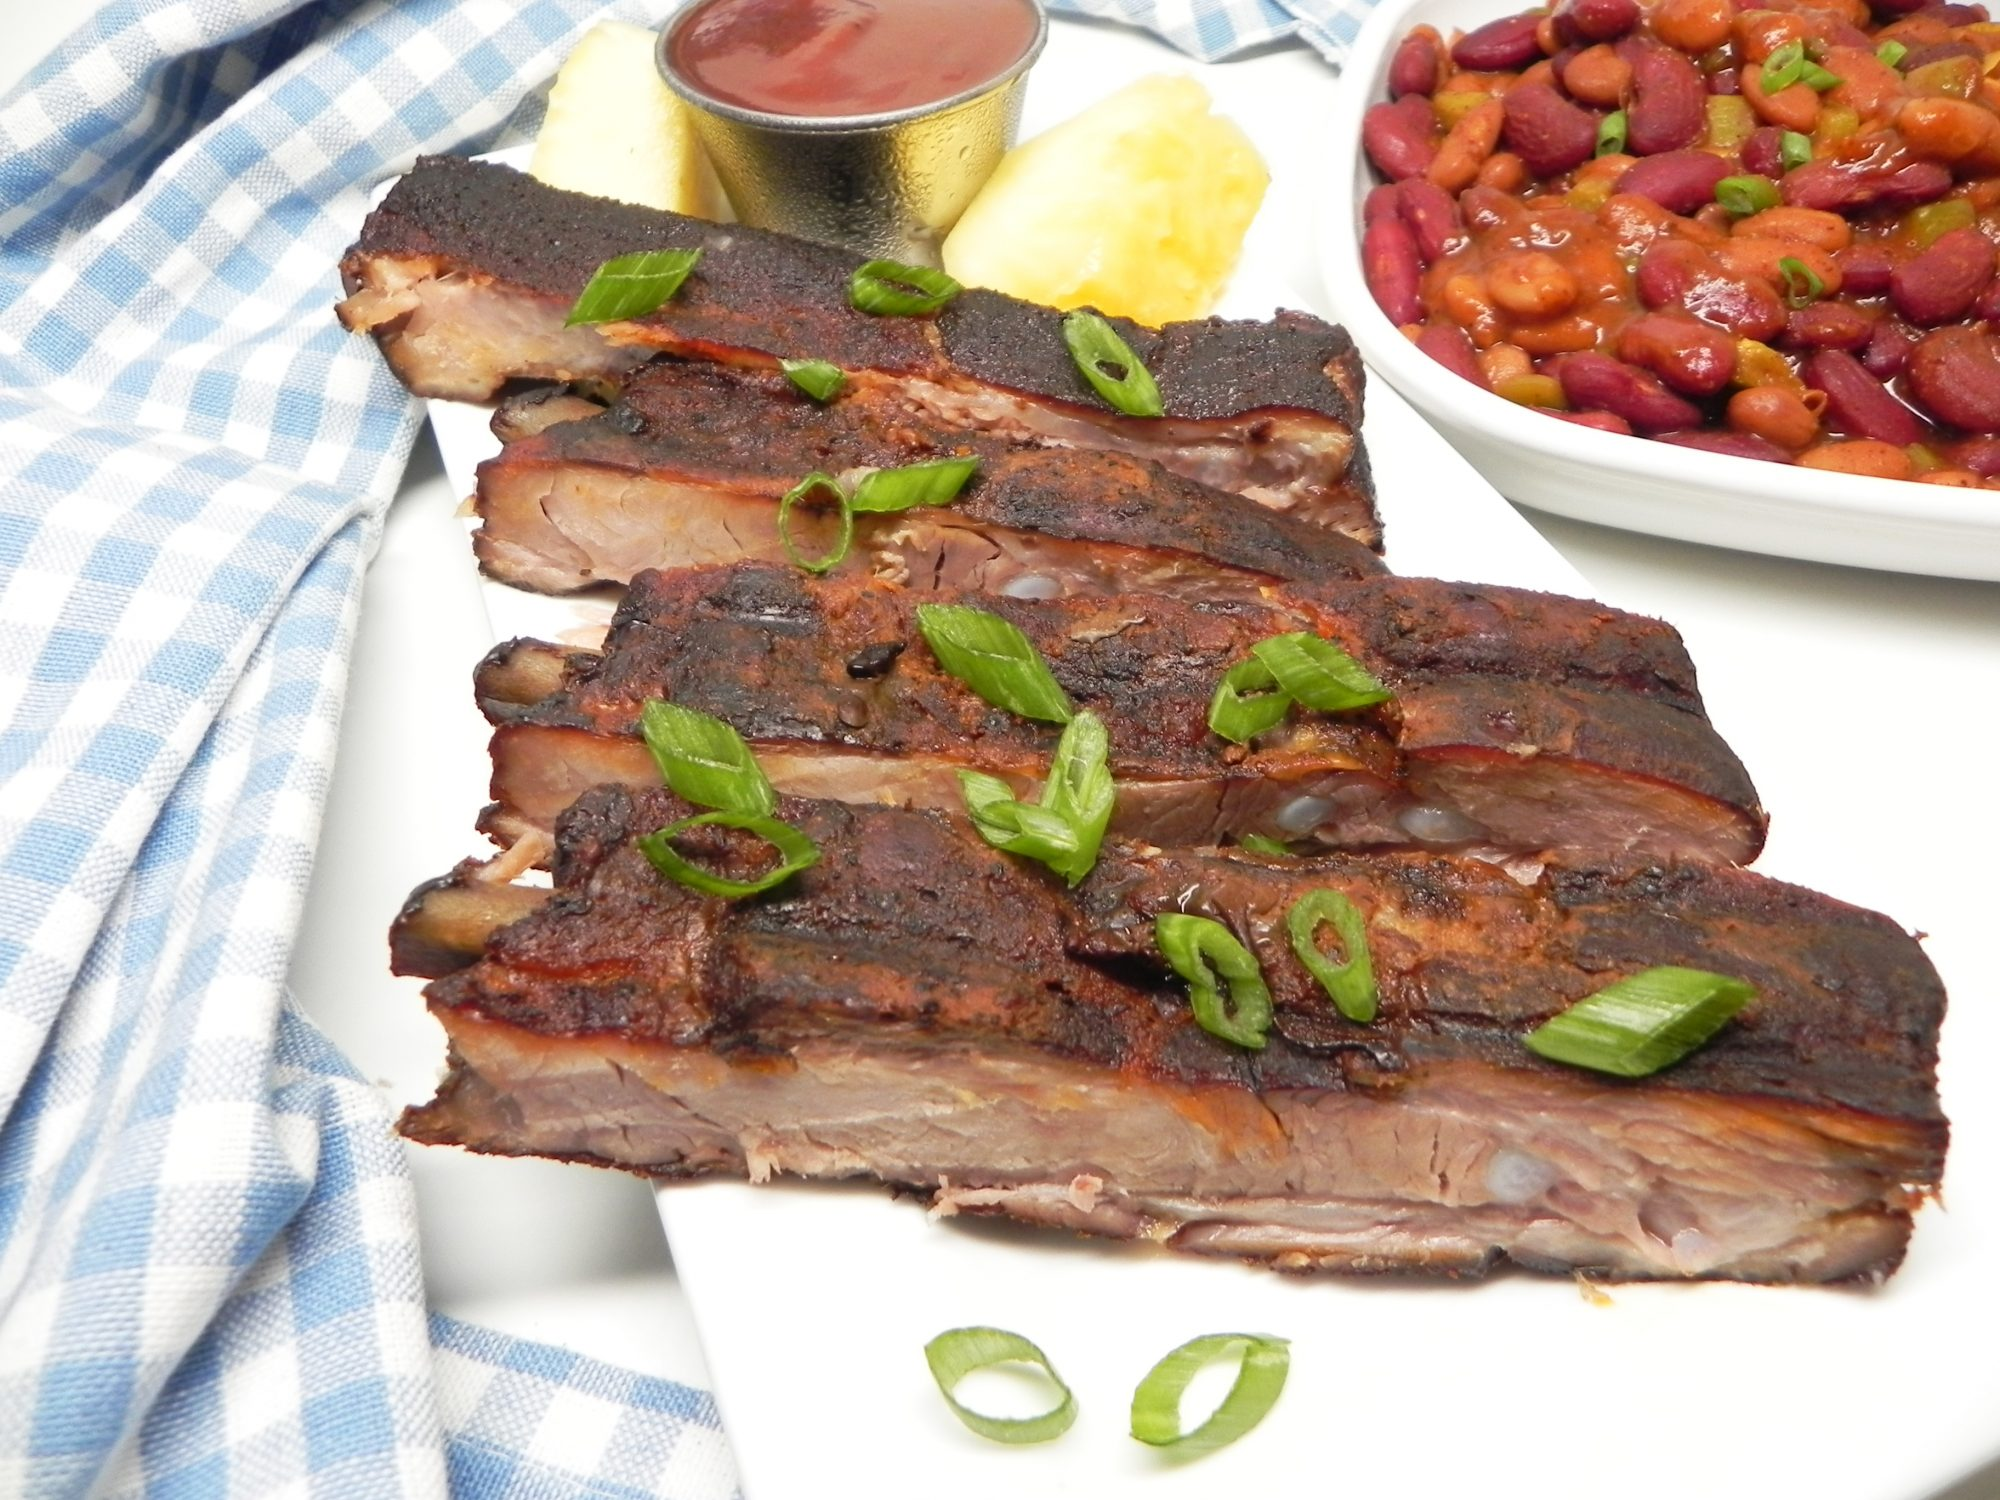 Botack's Fall-Off-the-Bone Pineapple Baked Rack of Ribs